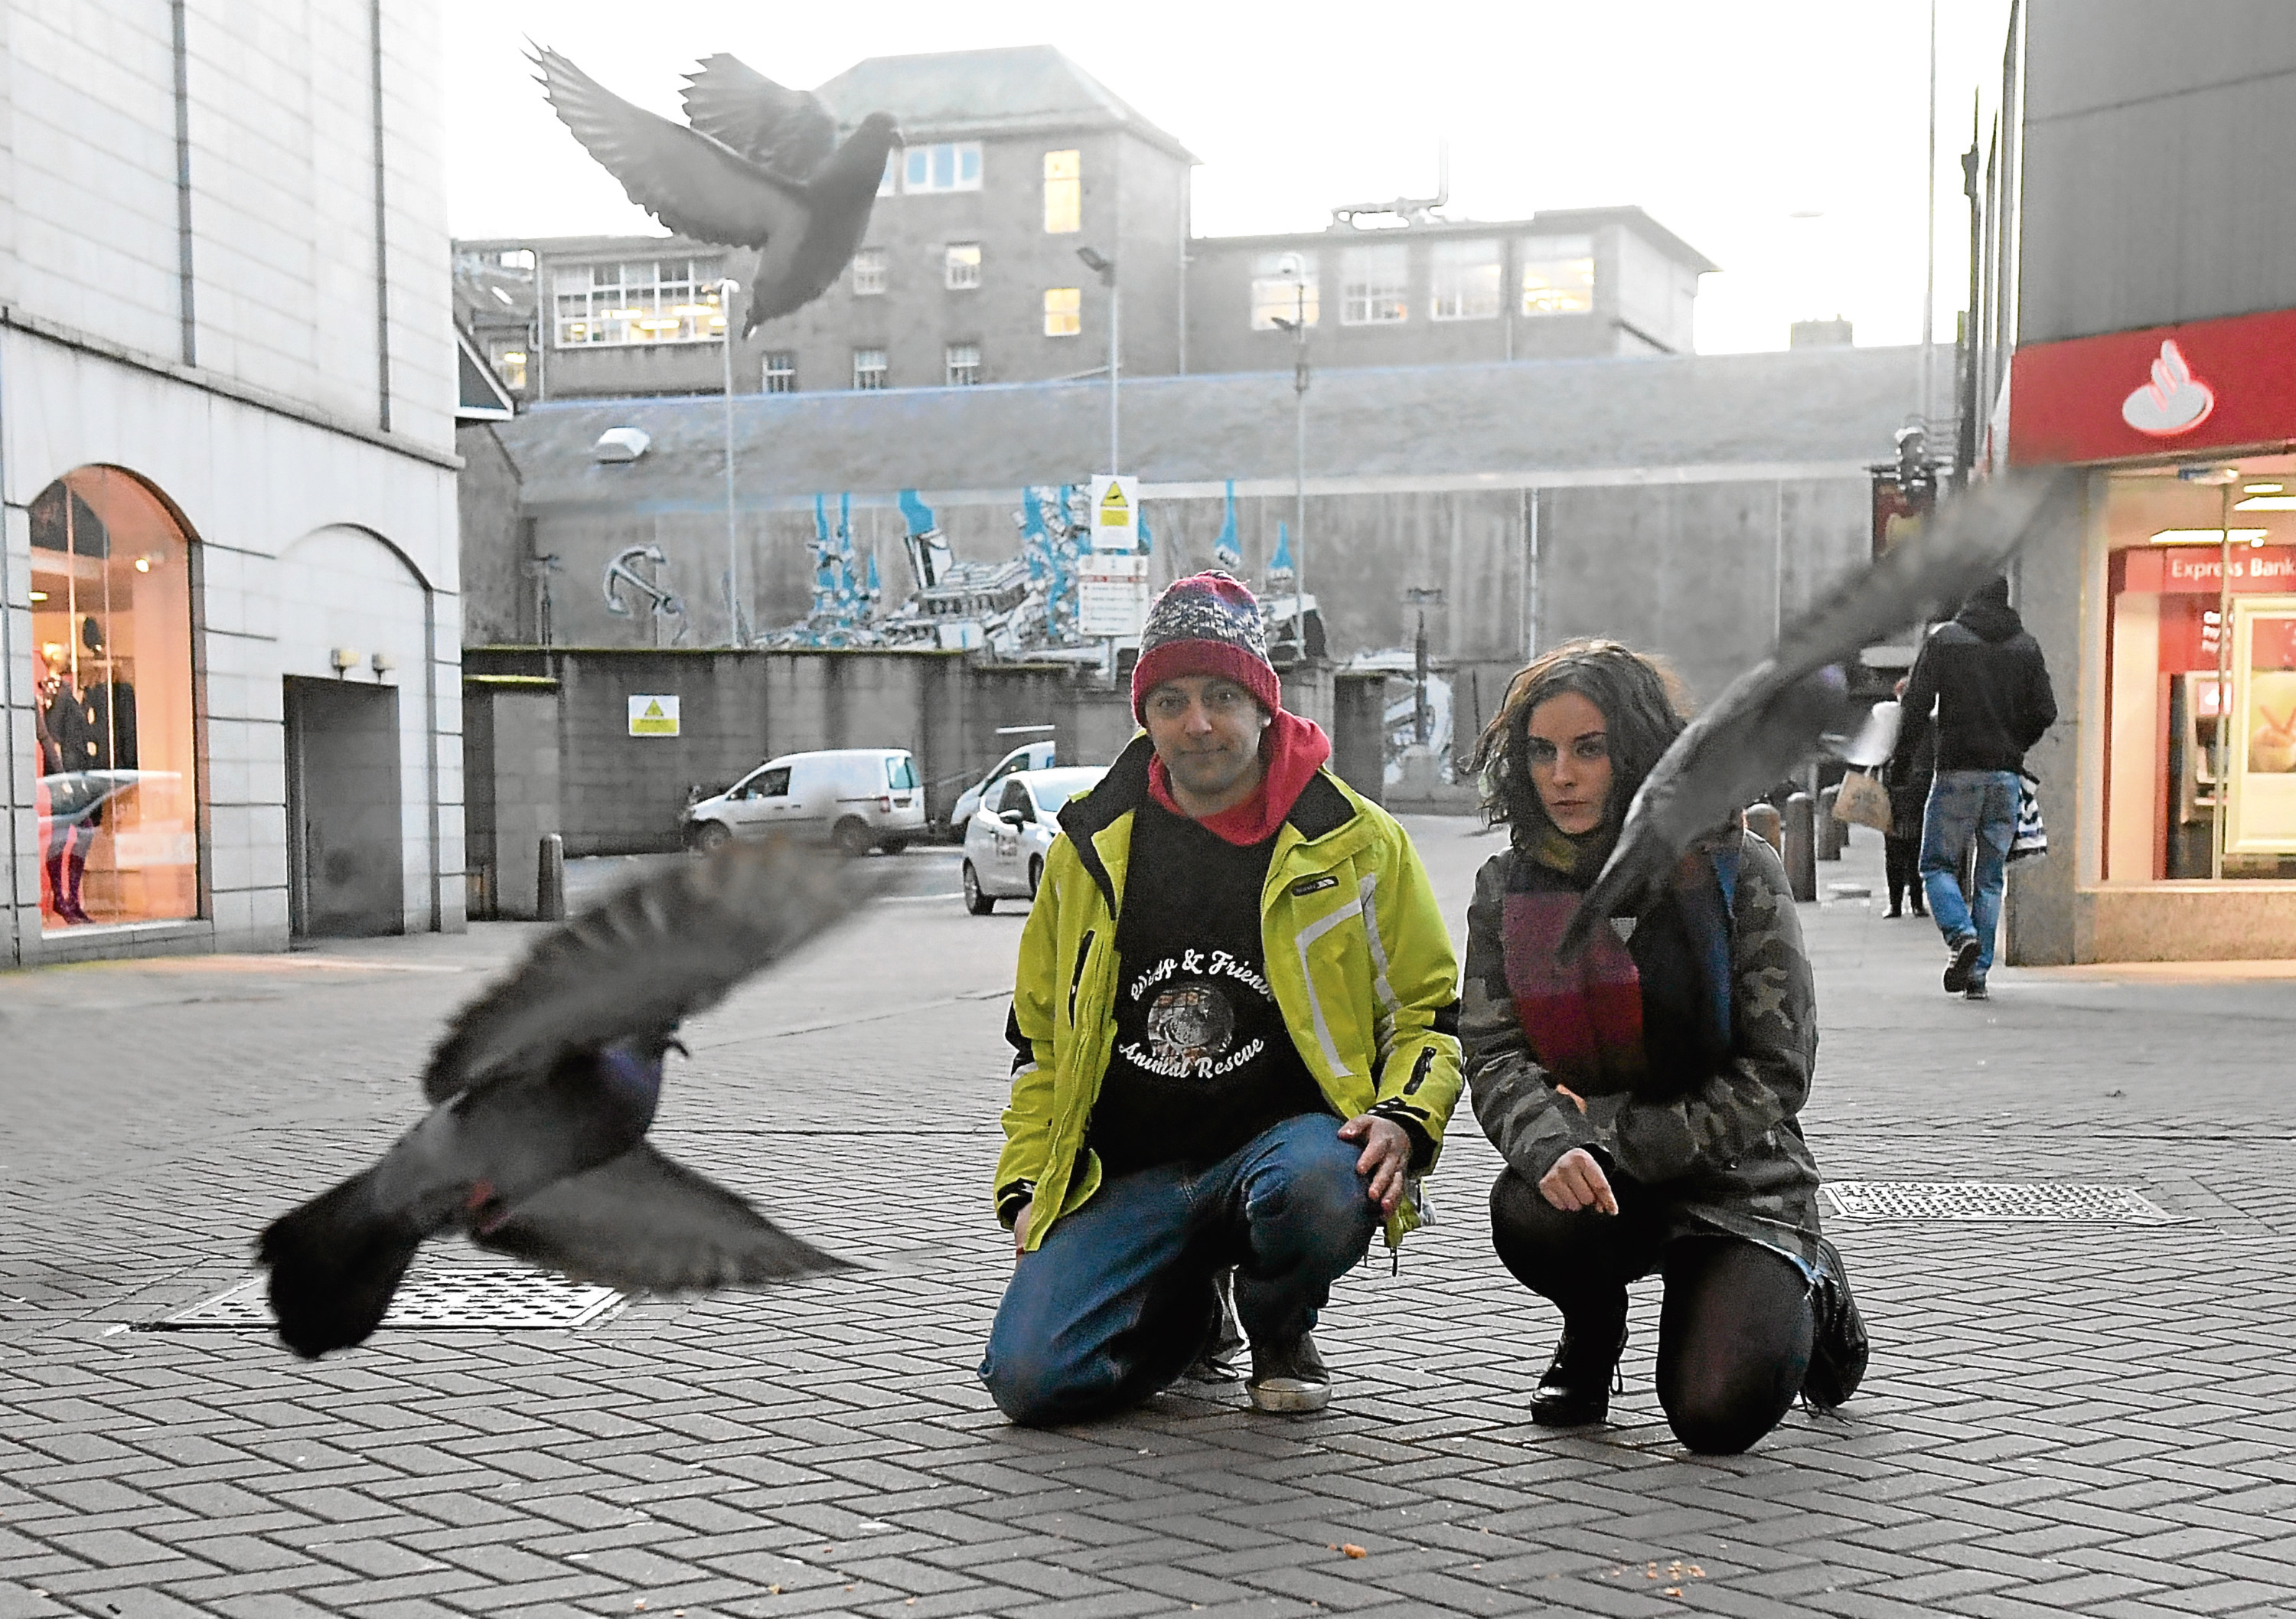 Kevin Newell and Flo Blackbourn are keeping a watchful eye on Aberdeen's pigeons so they can treat sick and injured birds.